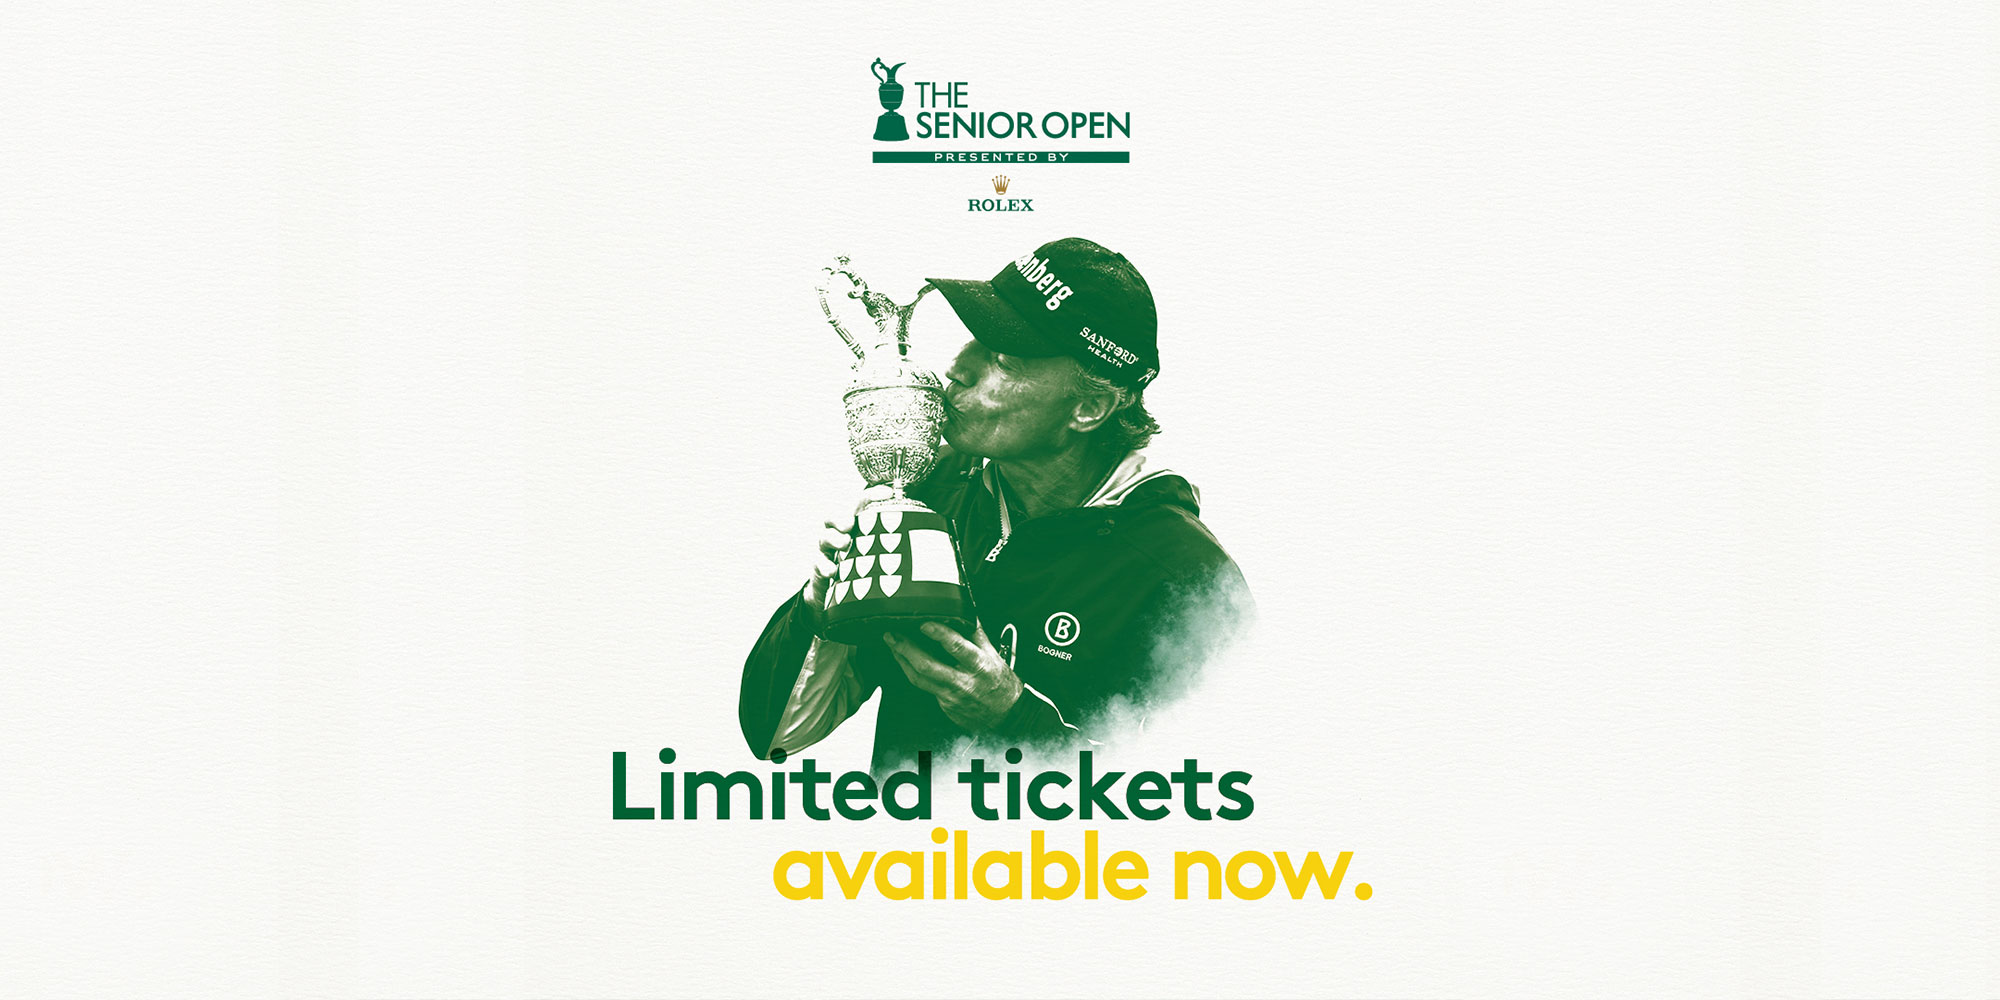 The Senior Open Presented by Rolex - Friday